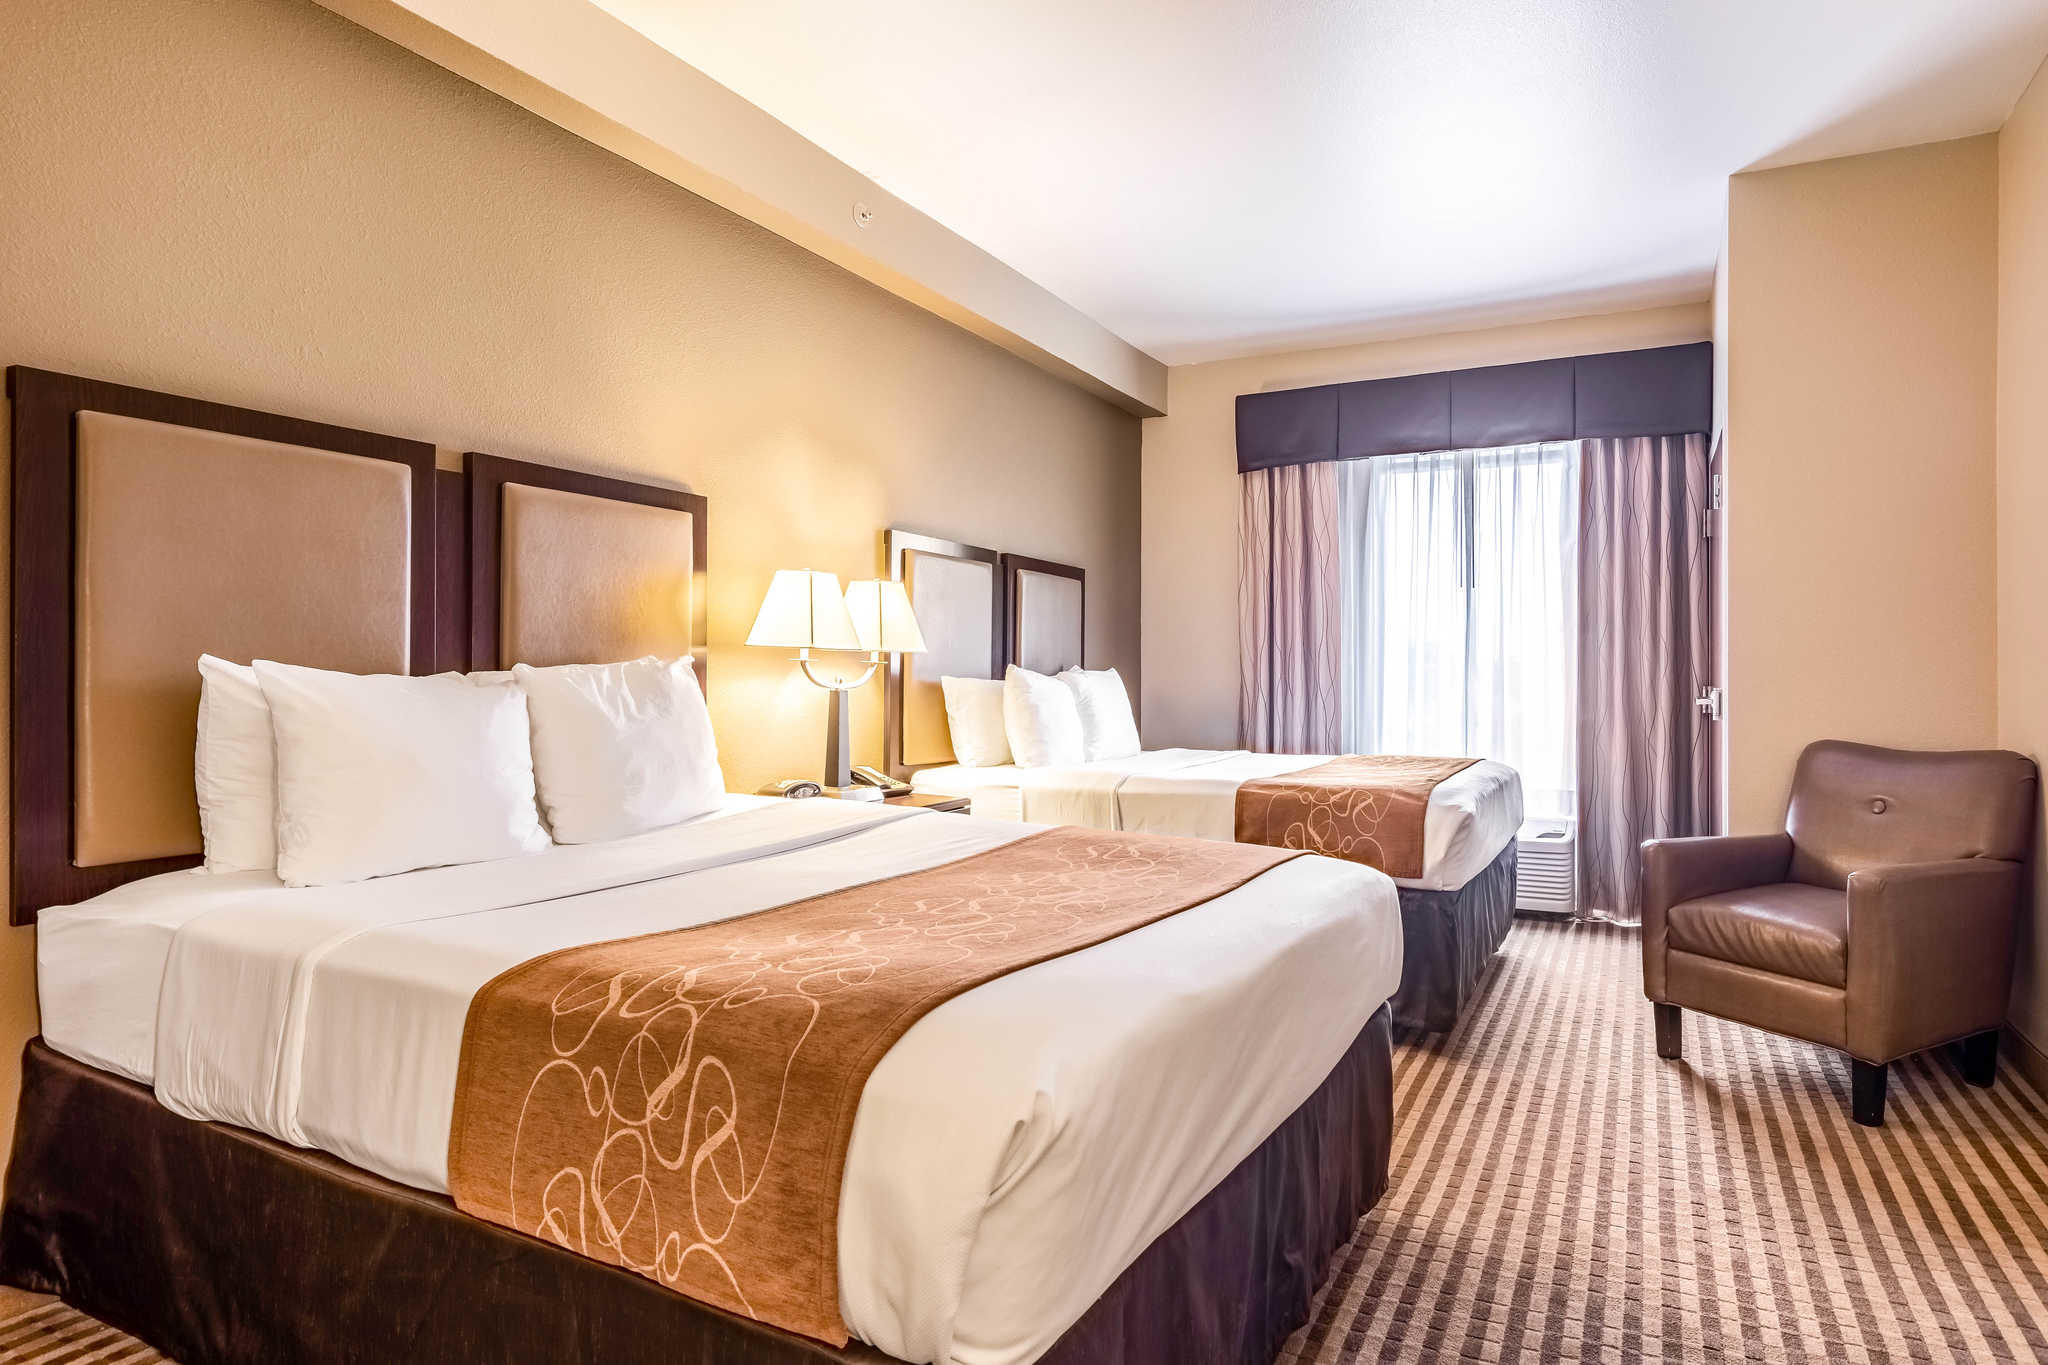 Candlewood Suites is located at Balmoral Dr in Alabaster, AL - Shelby County and is a business listed in the categories Hotels & Motels, Unfurnished Apartments, Apartments & Buildings, Apartments Unfurnished, Hotels (Except Casino Hotels).